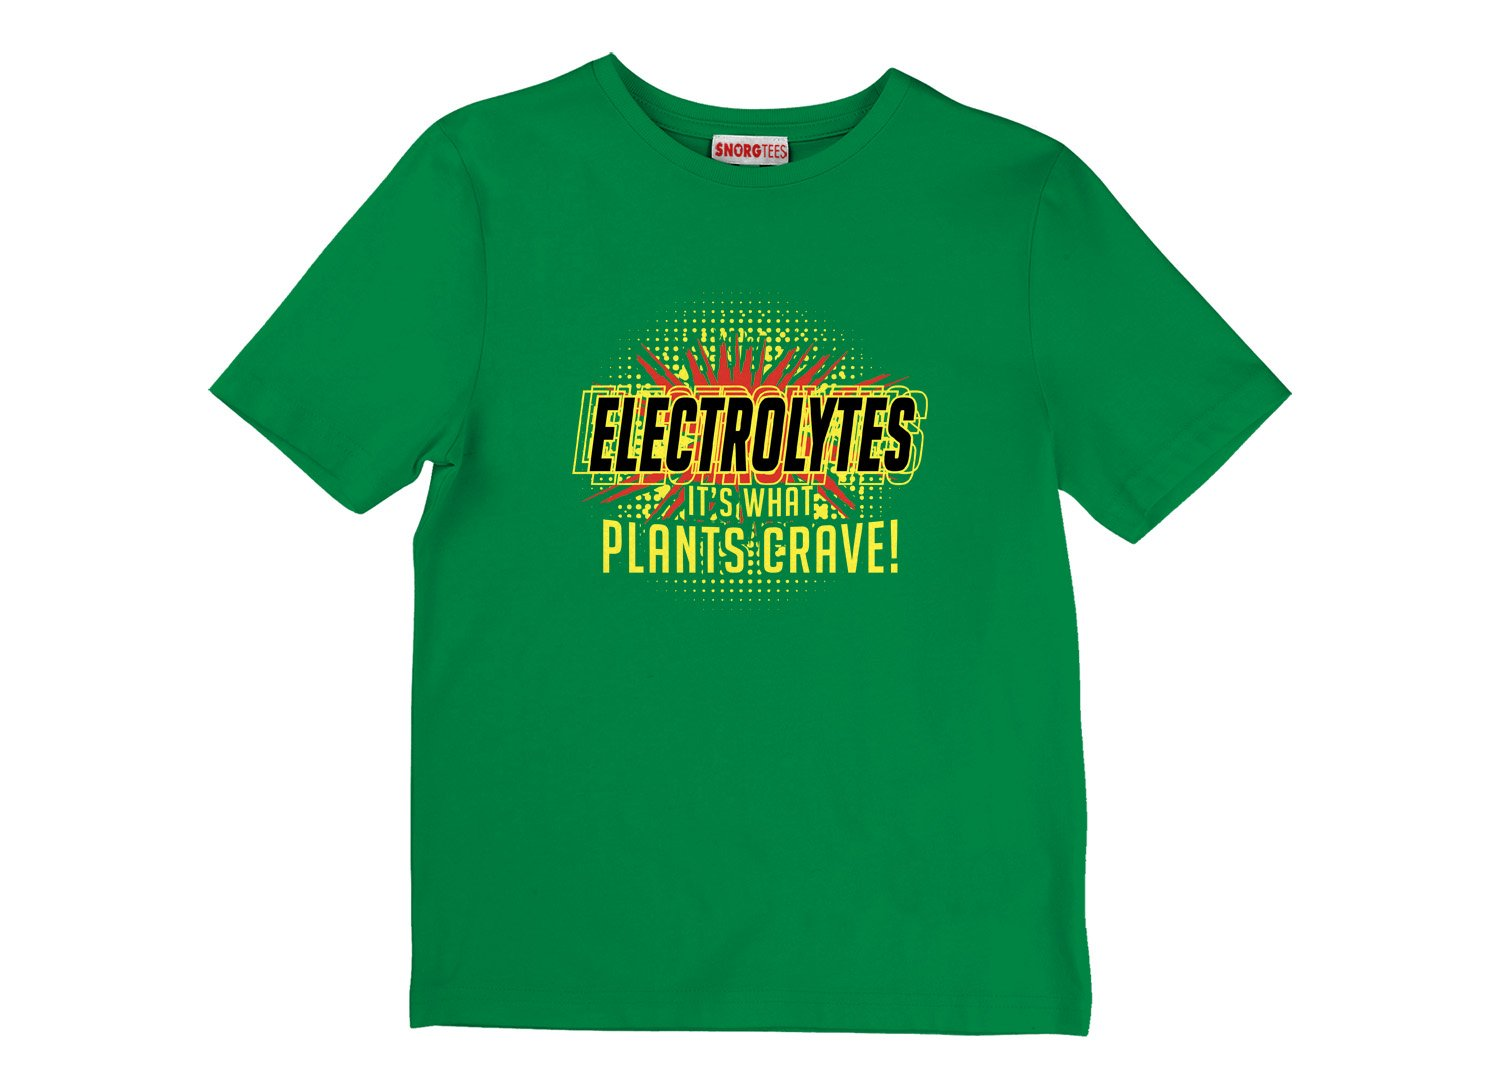 Electrolytes, It's What Plants Crave! on Kids T-Shirt